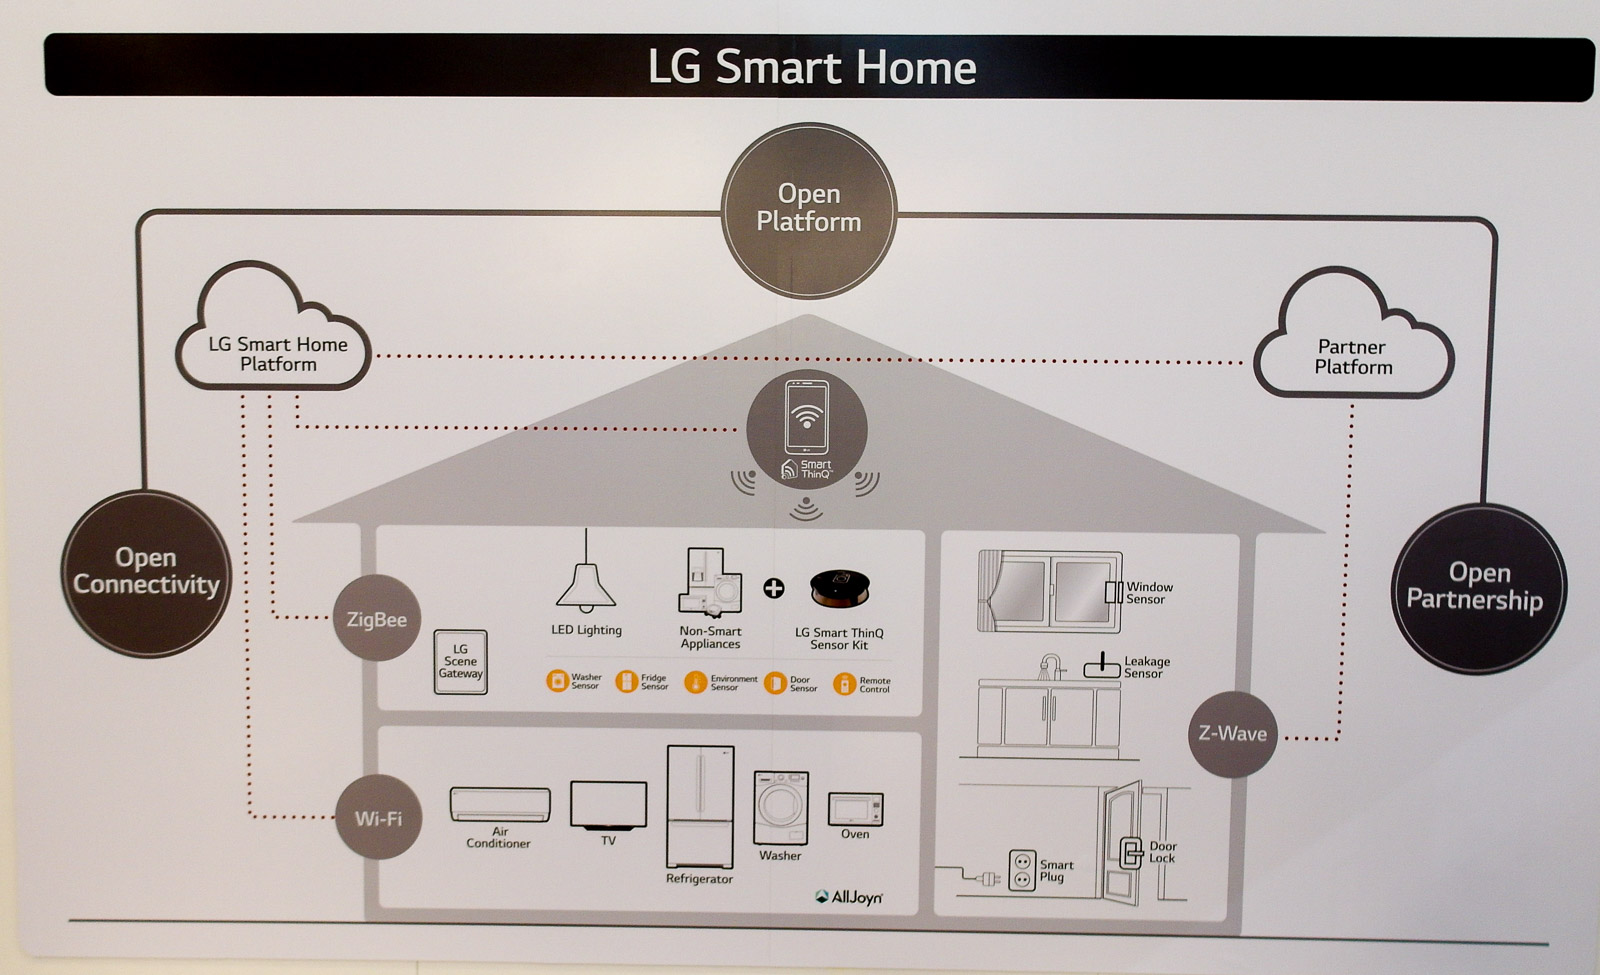 <h1>LG Smart Home Strategy</h1> <h2>IFA 2015 SmartHomeConsult Report</h2>